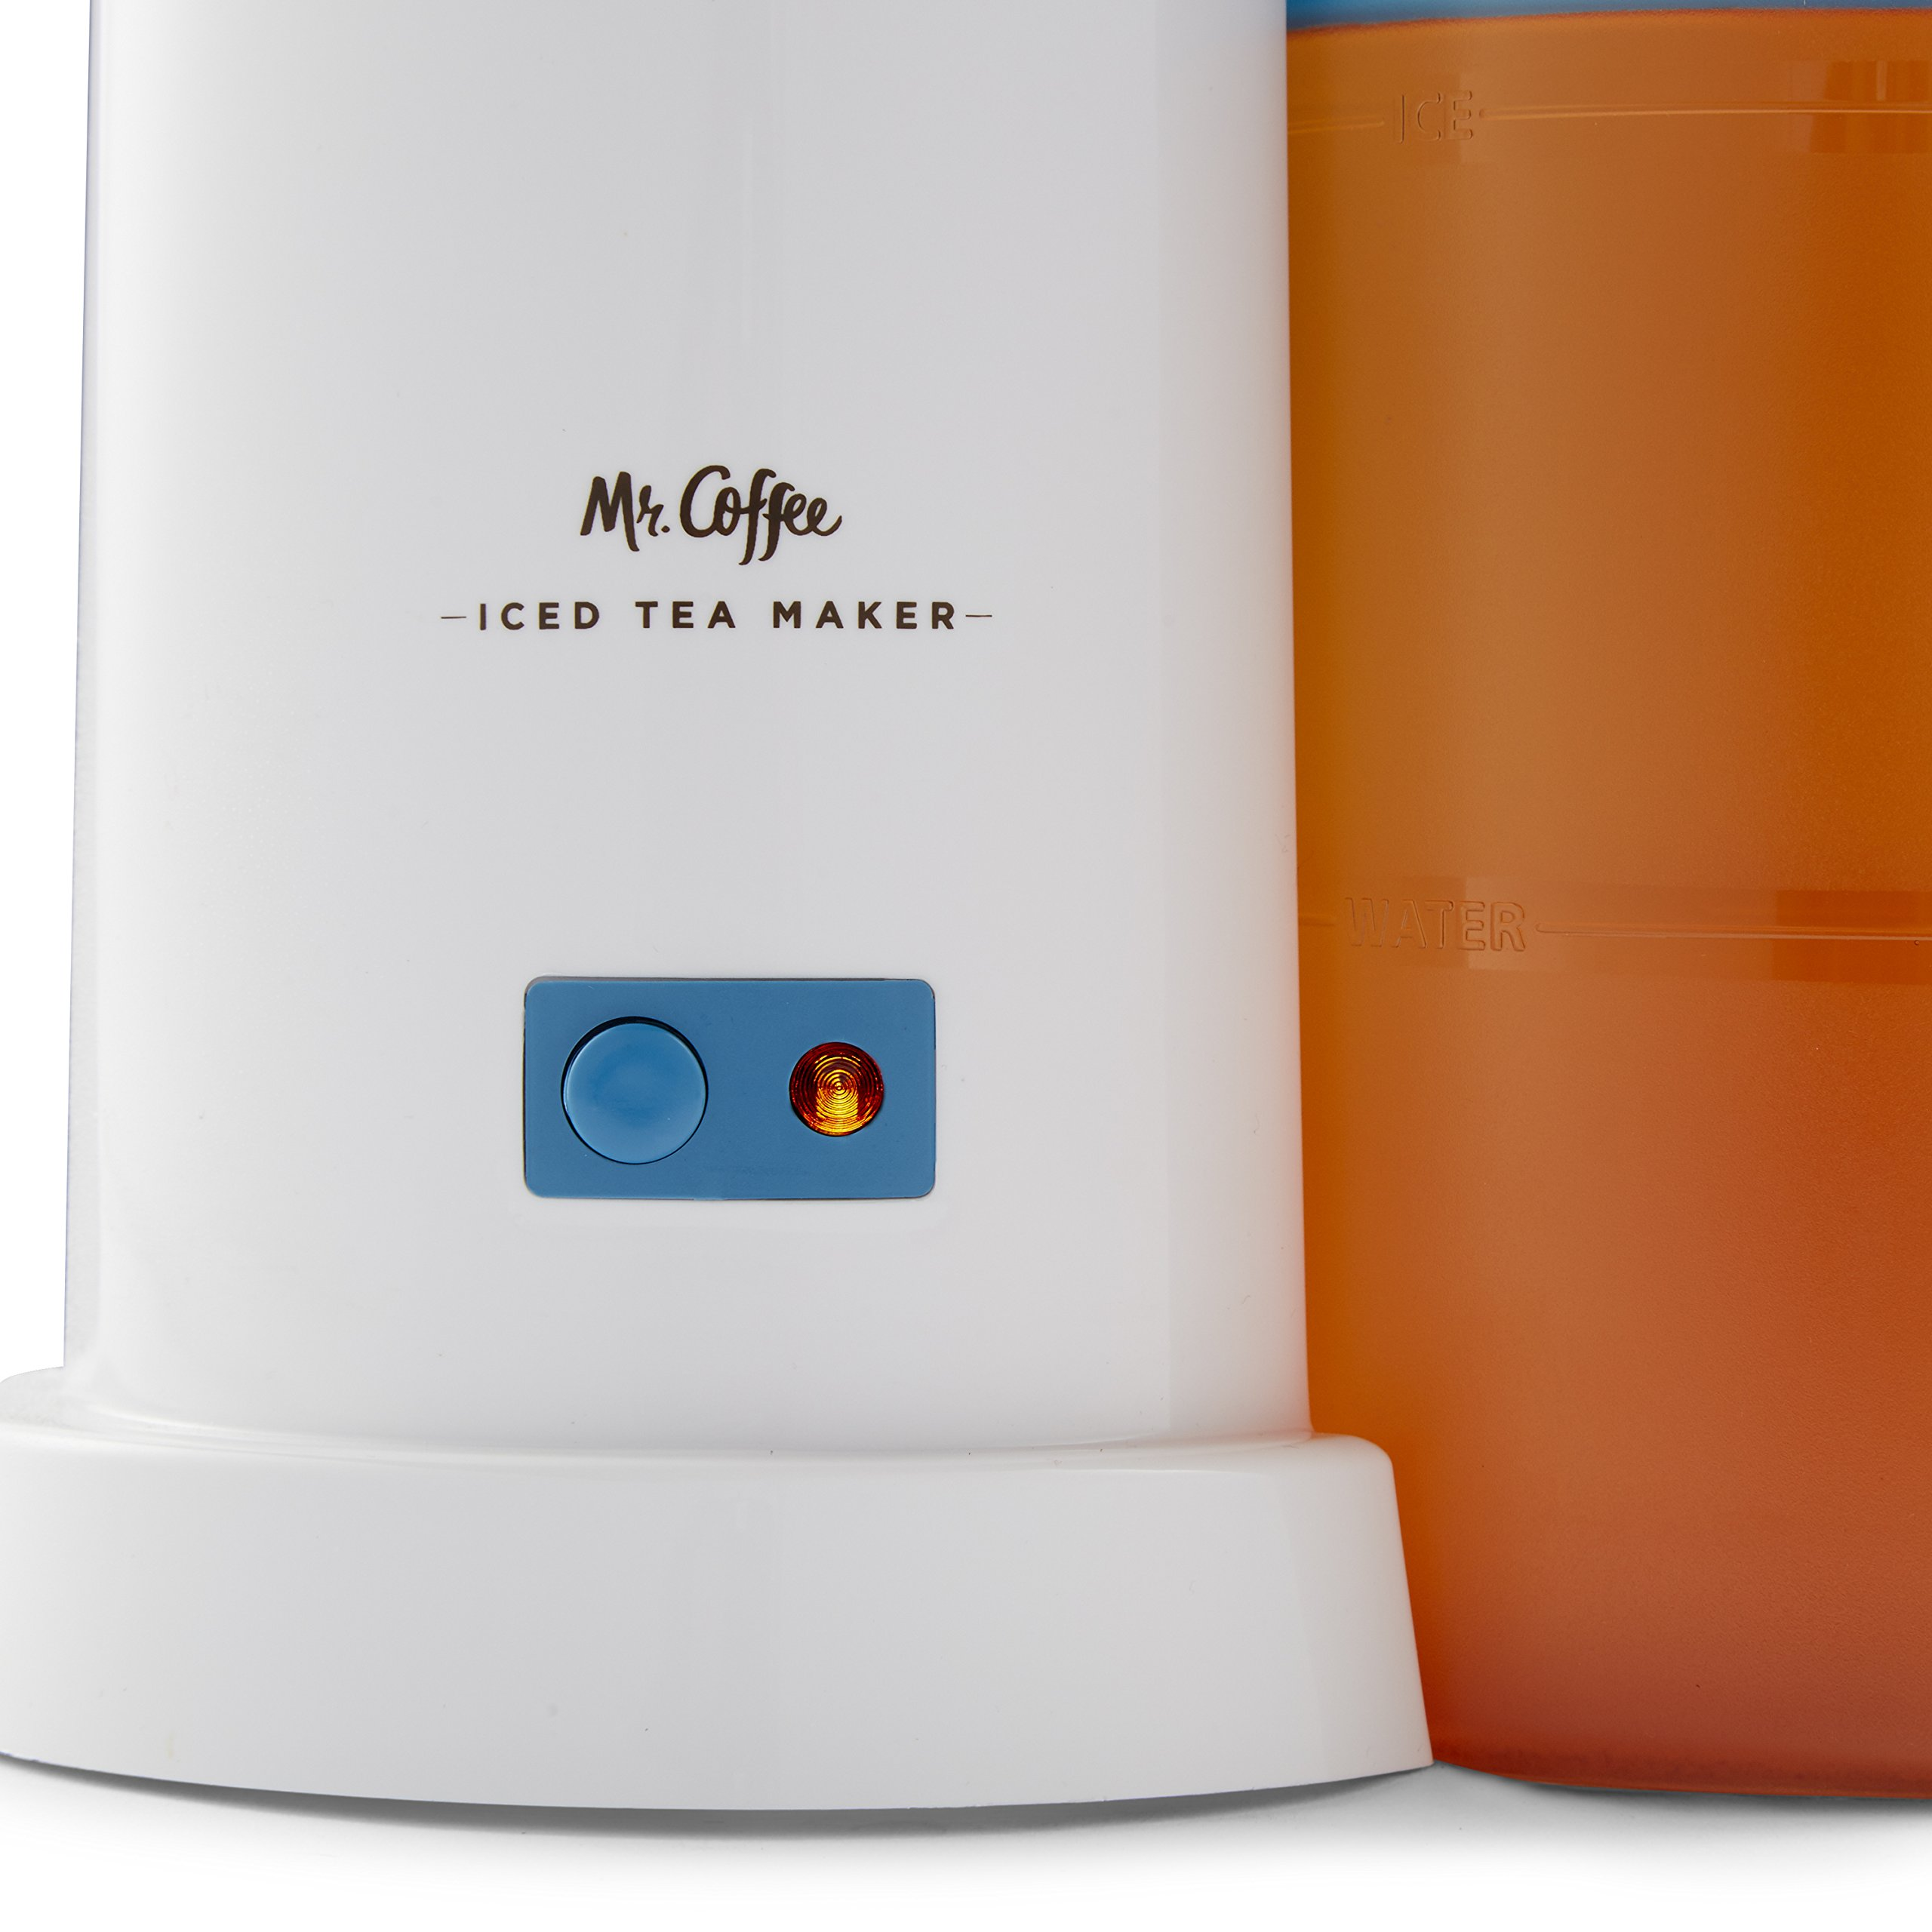 Mr. Coffee 2-Quart Iced Tea & Iced Coffee Maker, Blue by Mr. Coffee (Image #4)